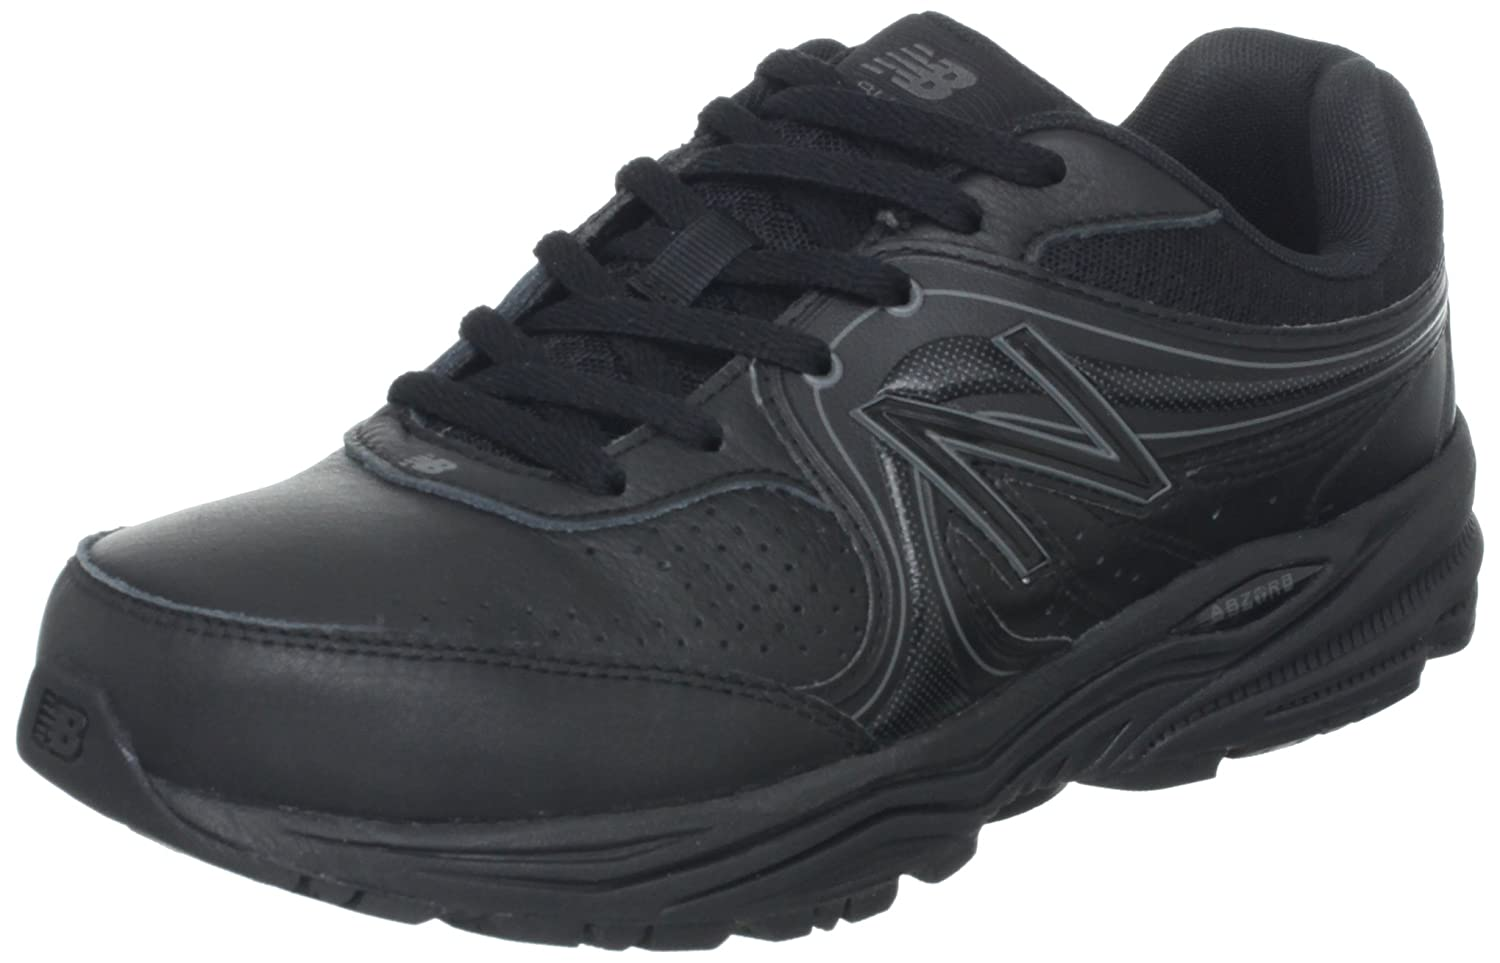 New Balance - Zapatillas de running para mujer, color negro, talla 38.5: Amazon.es: Zapatos y complementos